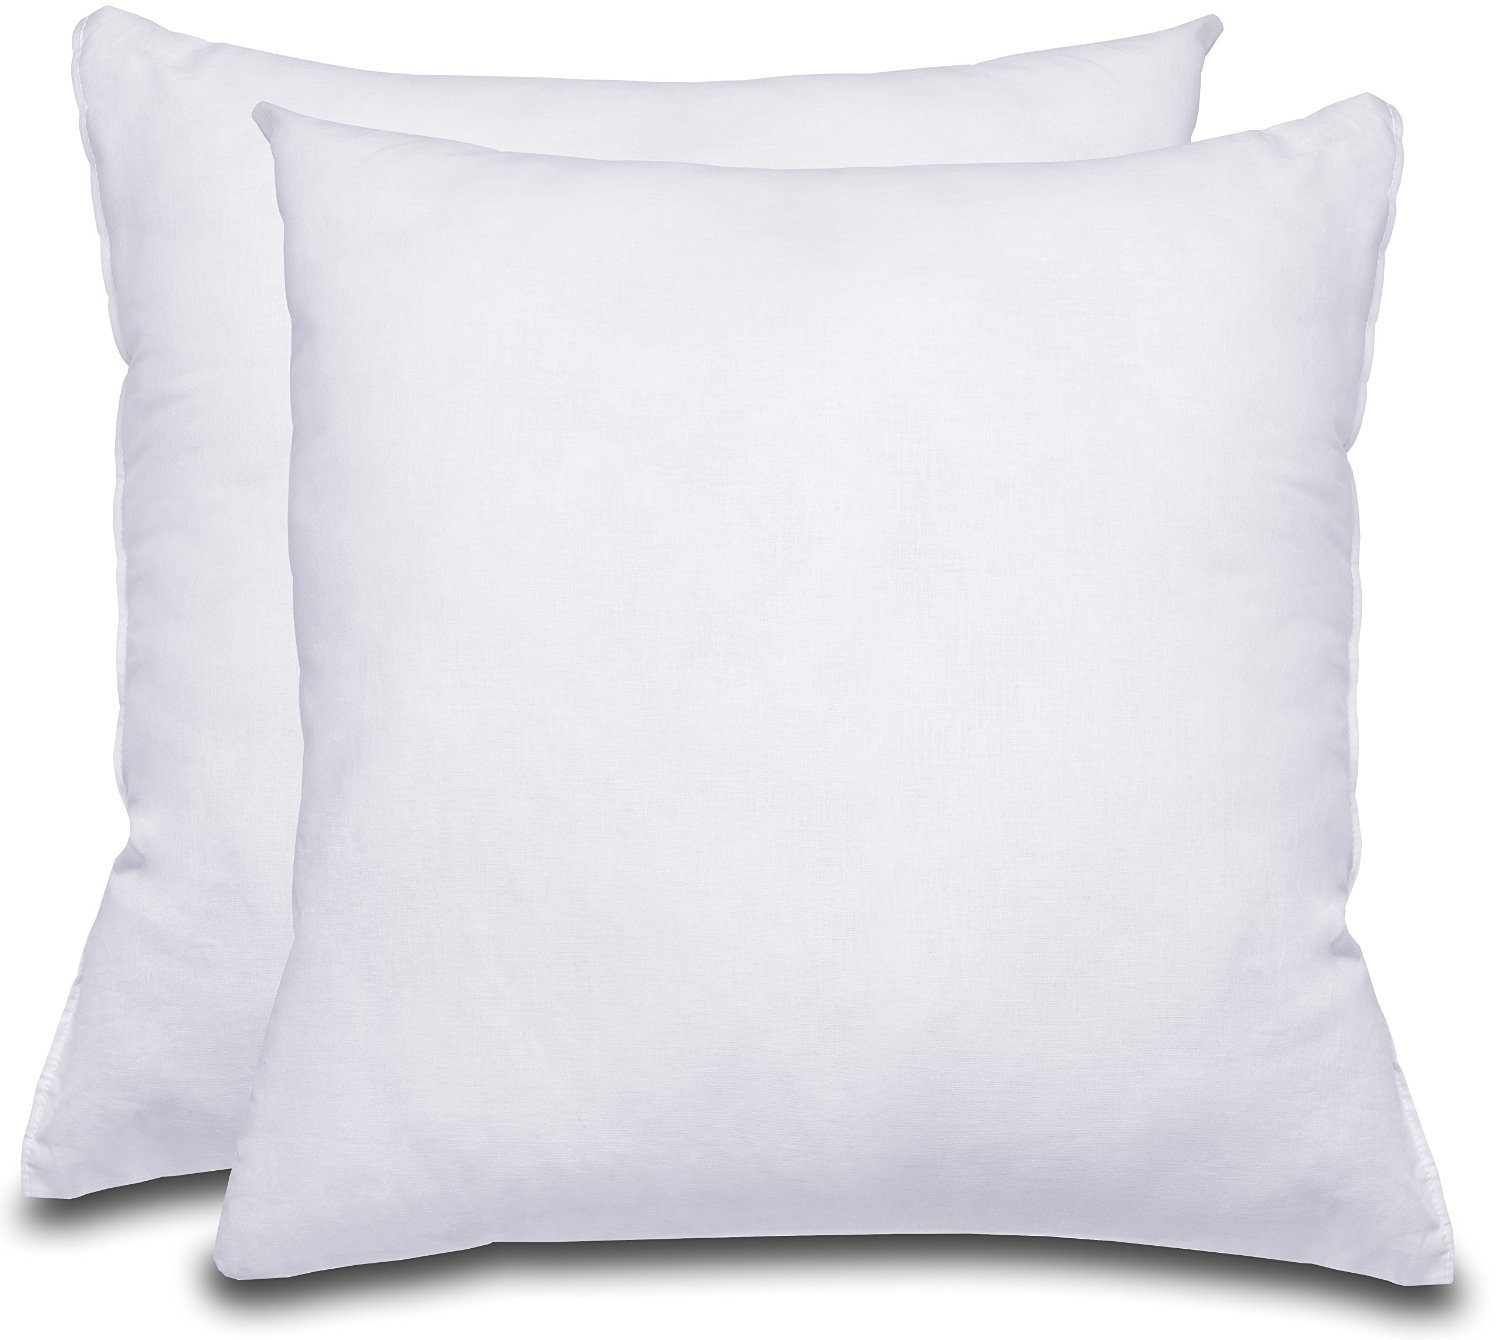 White bed pillows - Decorative Pillow Insert 2 Pack Square 18x18 Sofa Bed Pillow Polyester Cotton Indoor White Pillows By Utopia Bedding